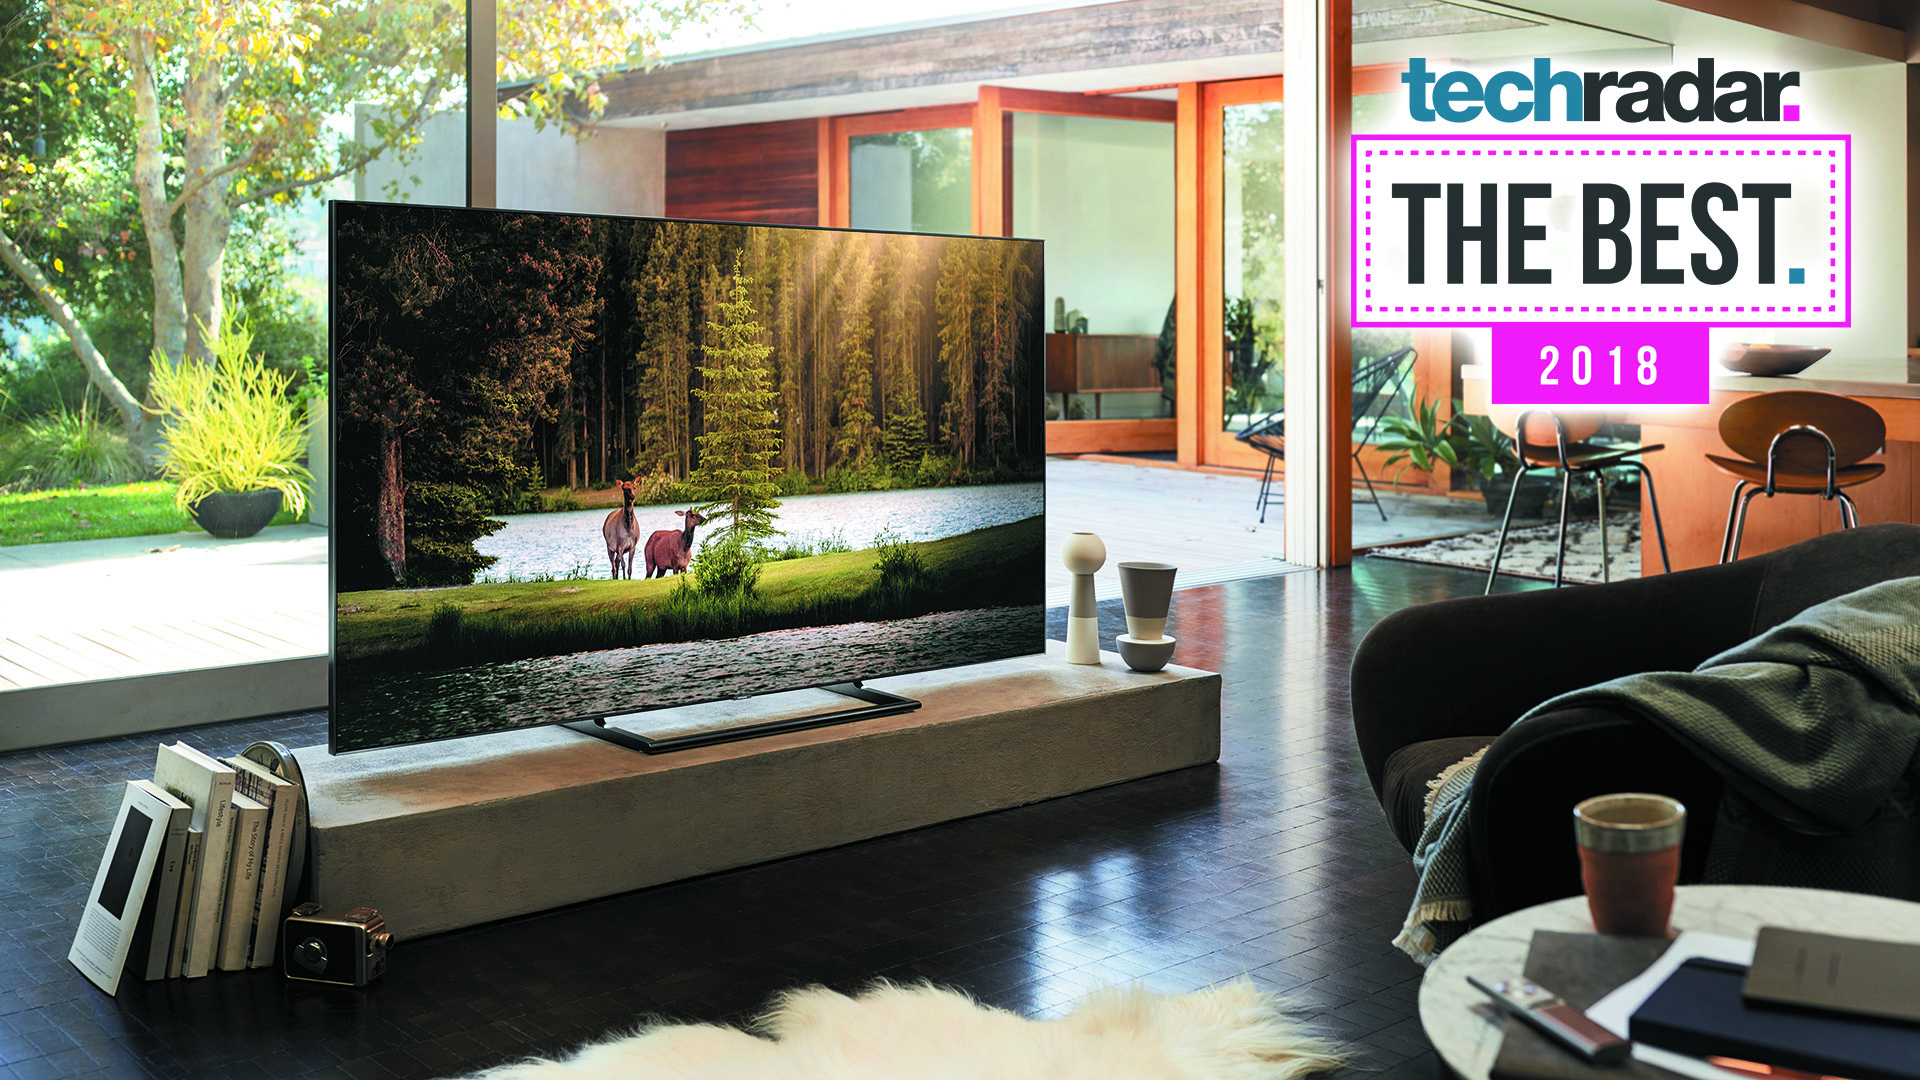 Best TV 2019: which TV should you buy?